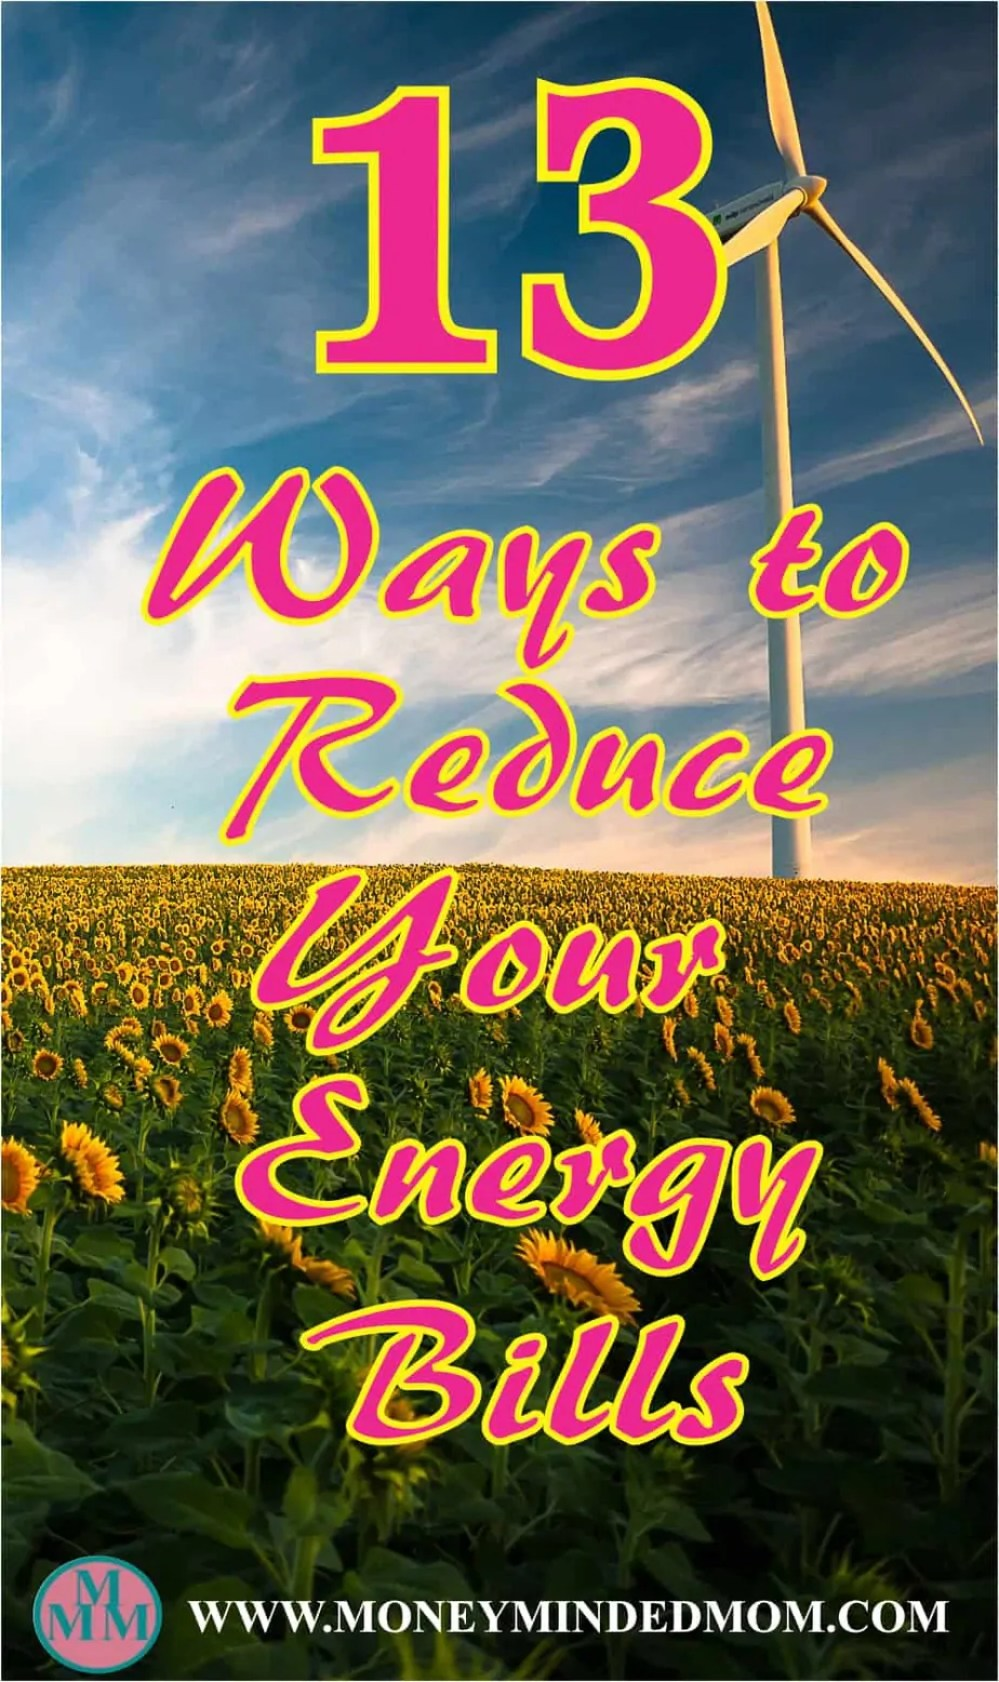 13 Ways to Reduce Your Energy Bills - Reducing your energy bill can be easier than you think. Small changes that you make today can make a big difference in your energy use. Click to read how.